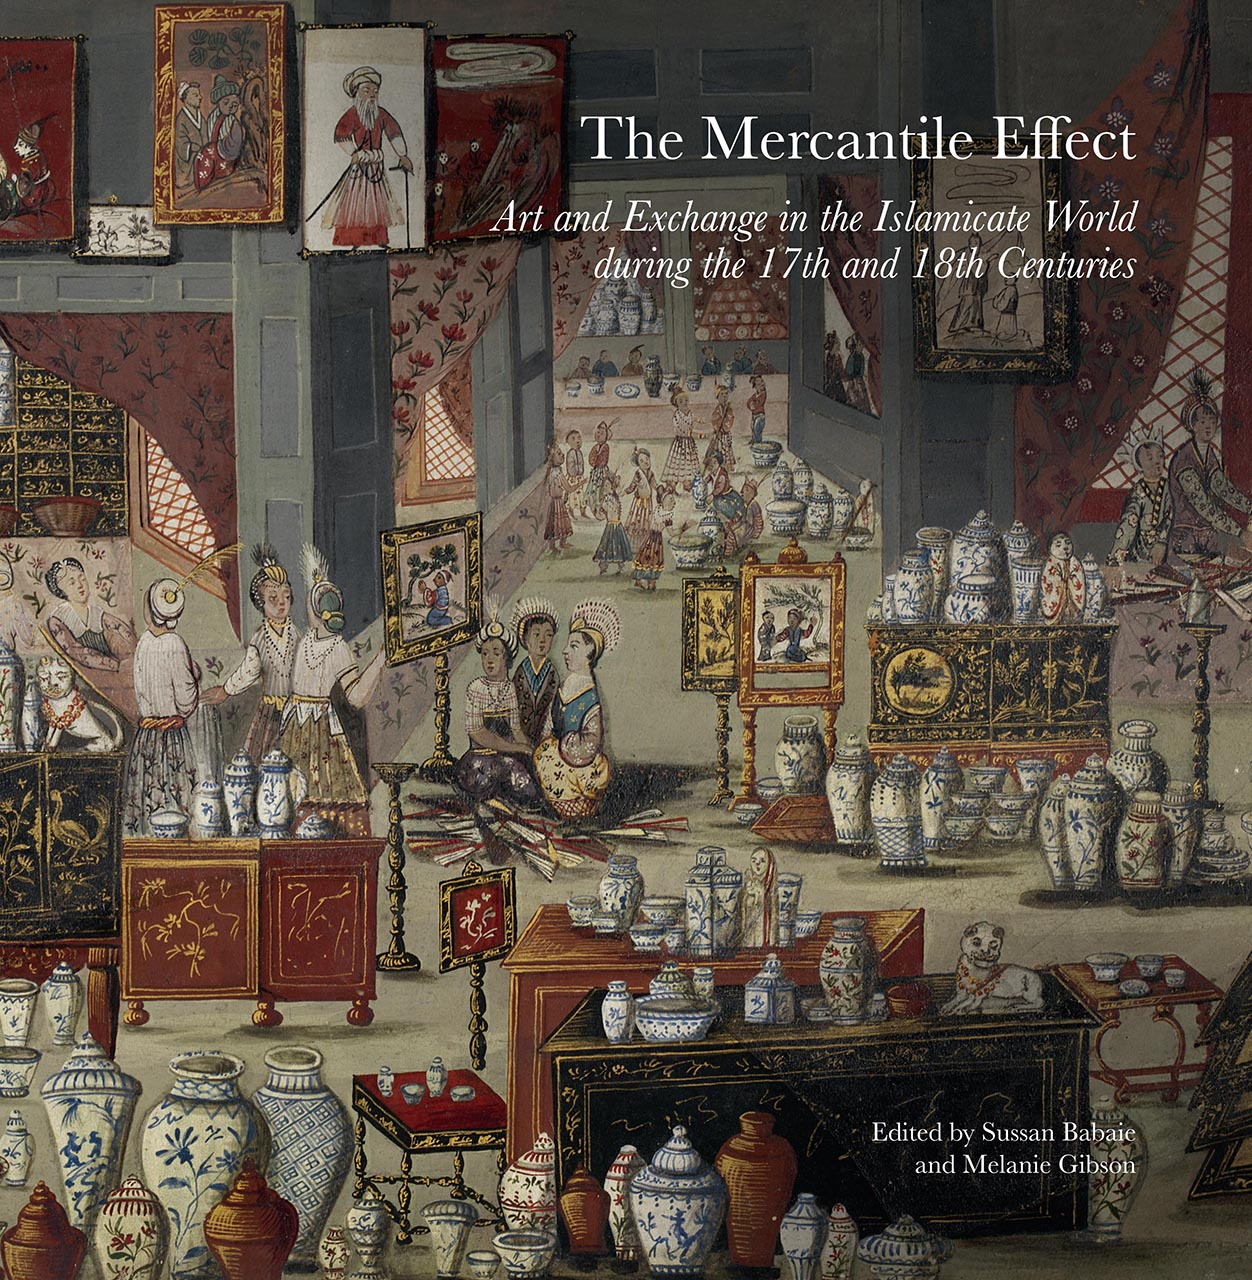 The Mercantile Effect: On Art and Exchange in the Islamicate World During the 17th and 18th Centuries